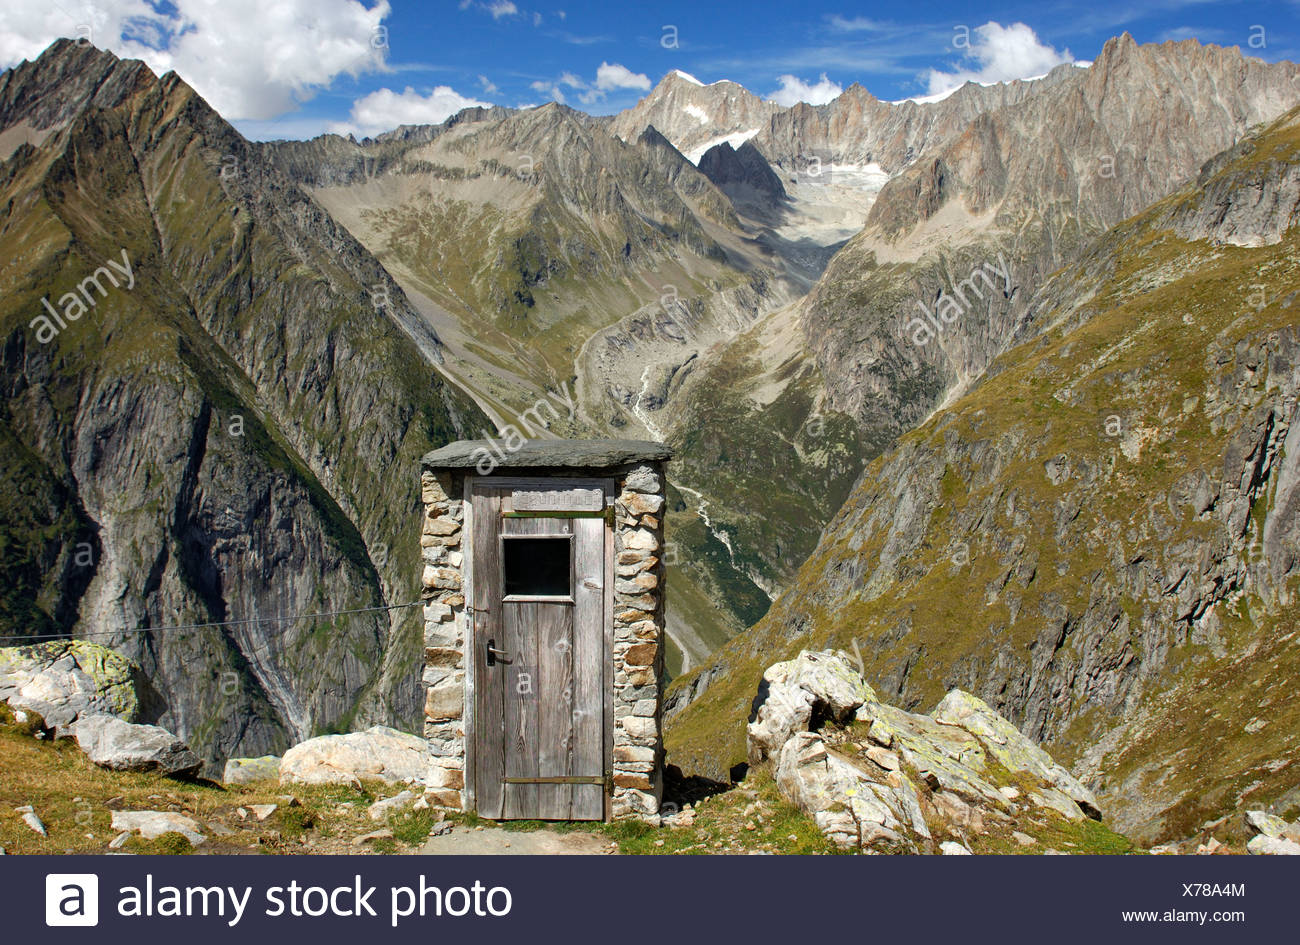 Toilet house with the best view in the Swiss Alps, Wiwanni Hut, Ausserberg Mountain, Valais, Switzerland, Europe - Stock Image